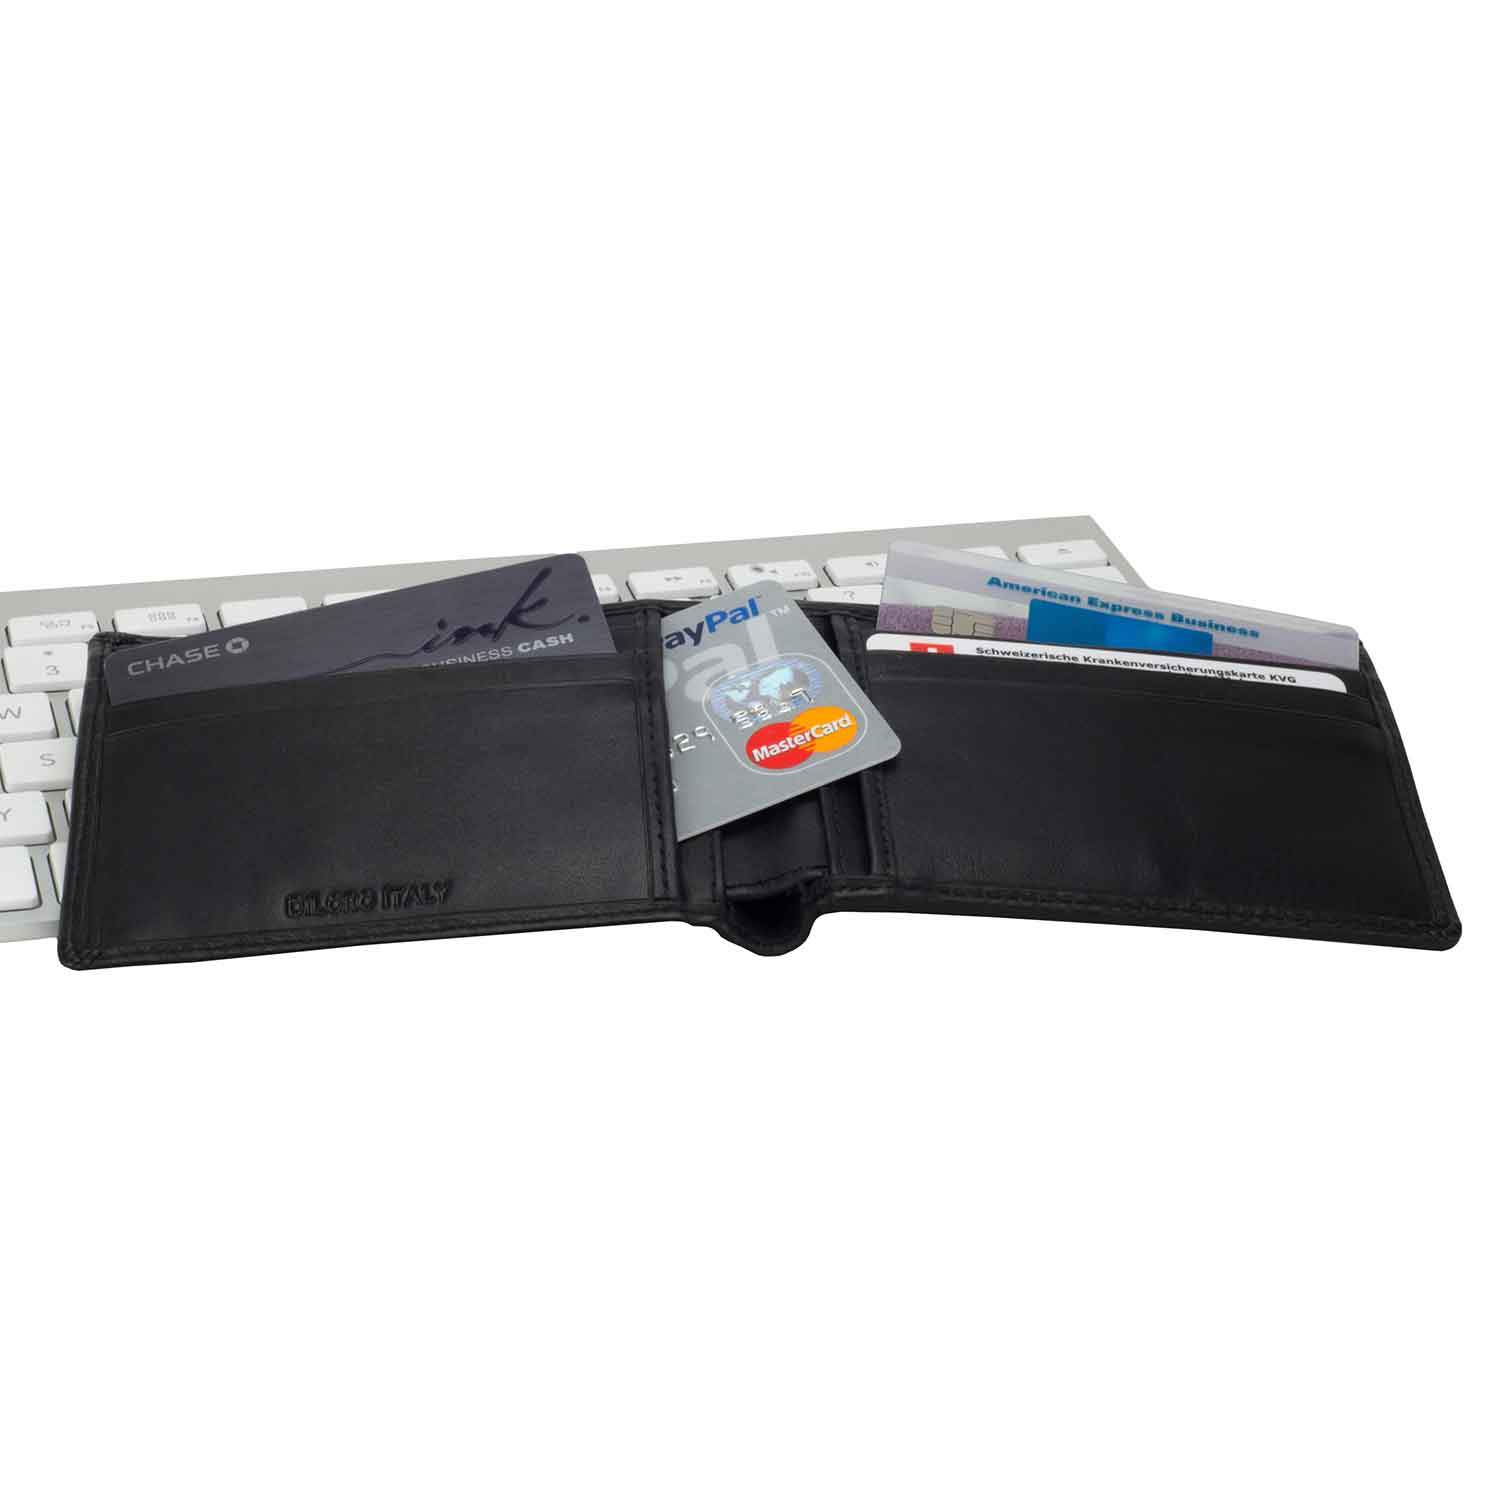 Wallet by DiLoro Italy Mens Wallets RFID Safe Genuine Leather Black Slim 2403-BK - Open, Flat Inside View with Cards (not included)